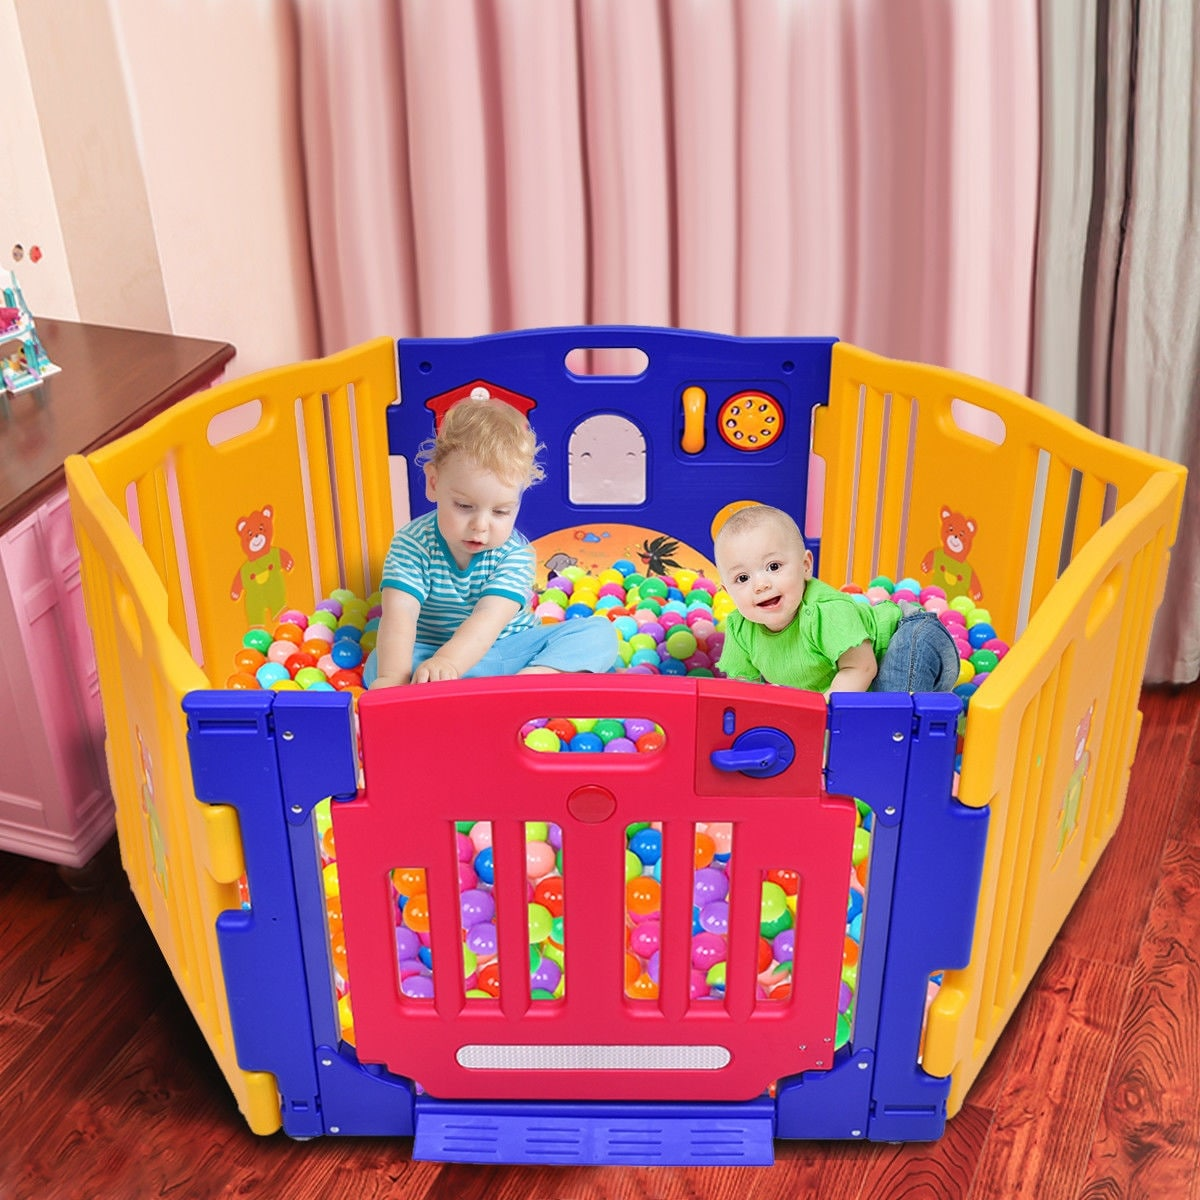 Baby Playpen How Costway 6 Panel Baby Playpen Kids Safety Play Center Yard Home Indoor Outdoor Pen